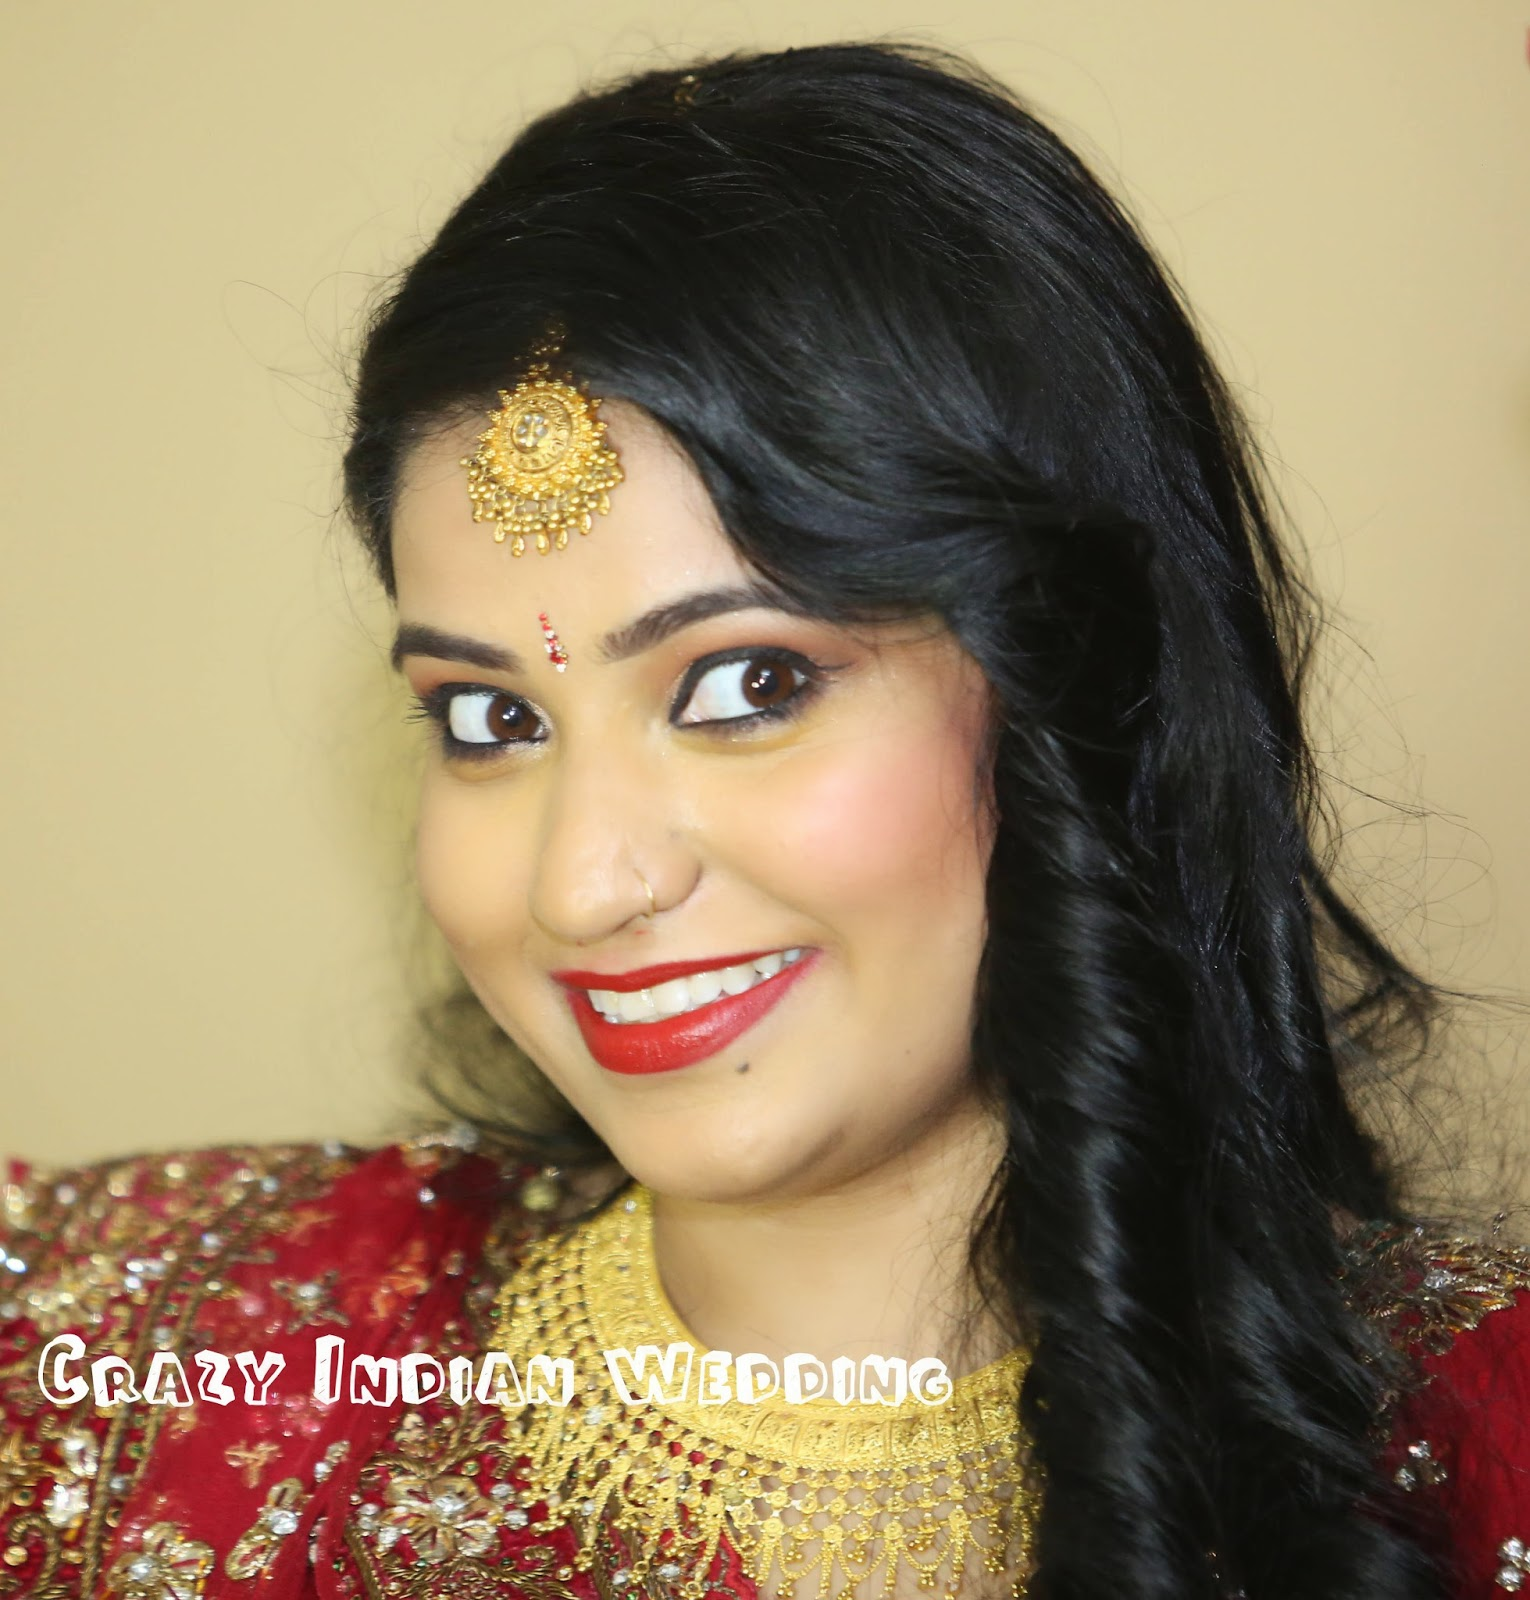 Crazy Indian Wedding Mission Marriage Plus Size Indian Bride Important Tips And Tricks